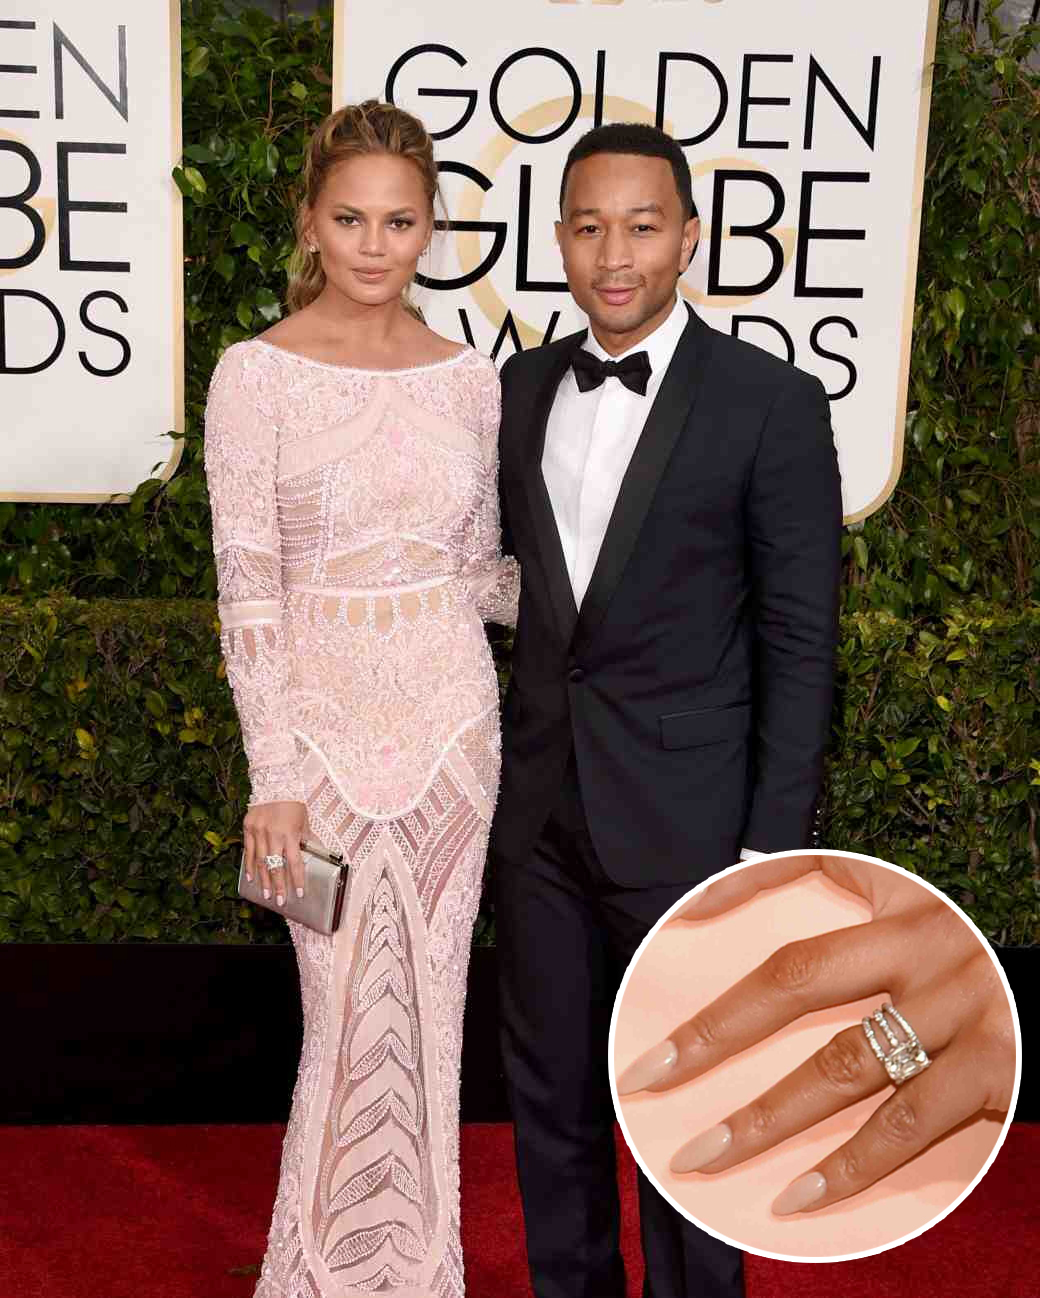 chrissy-teigen-ring-inset-0316.jpg